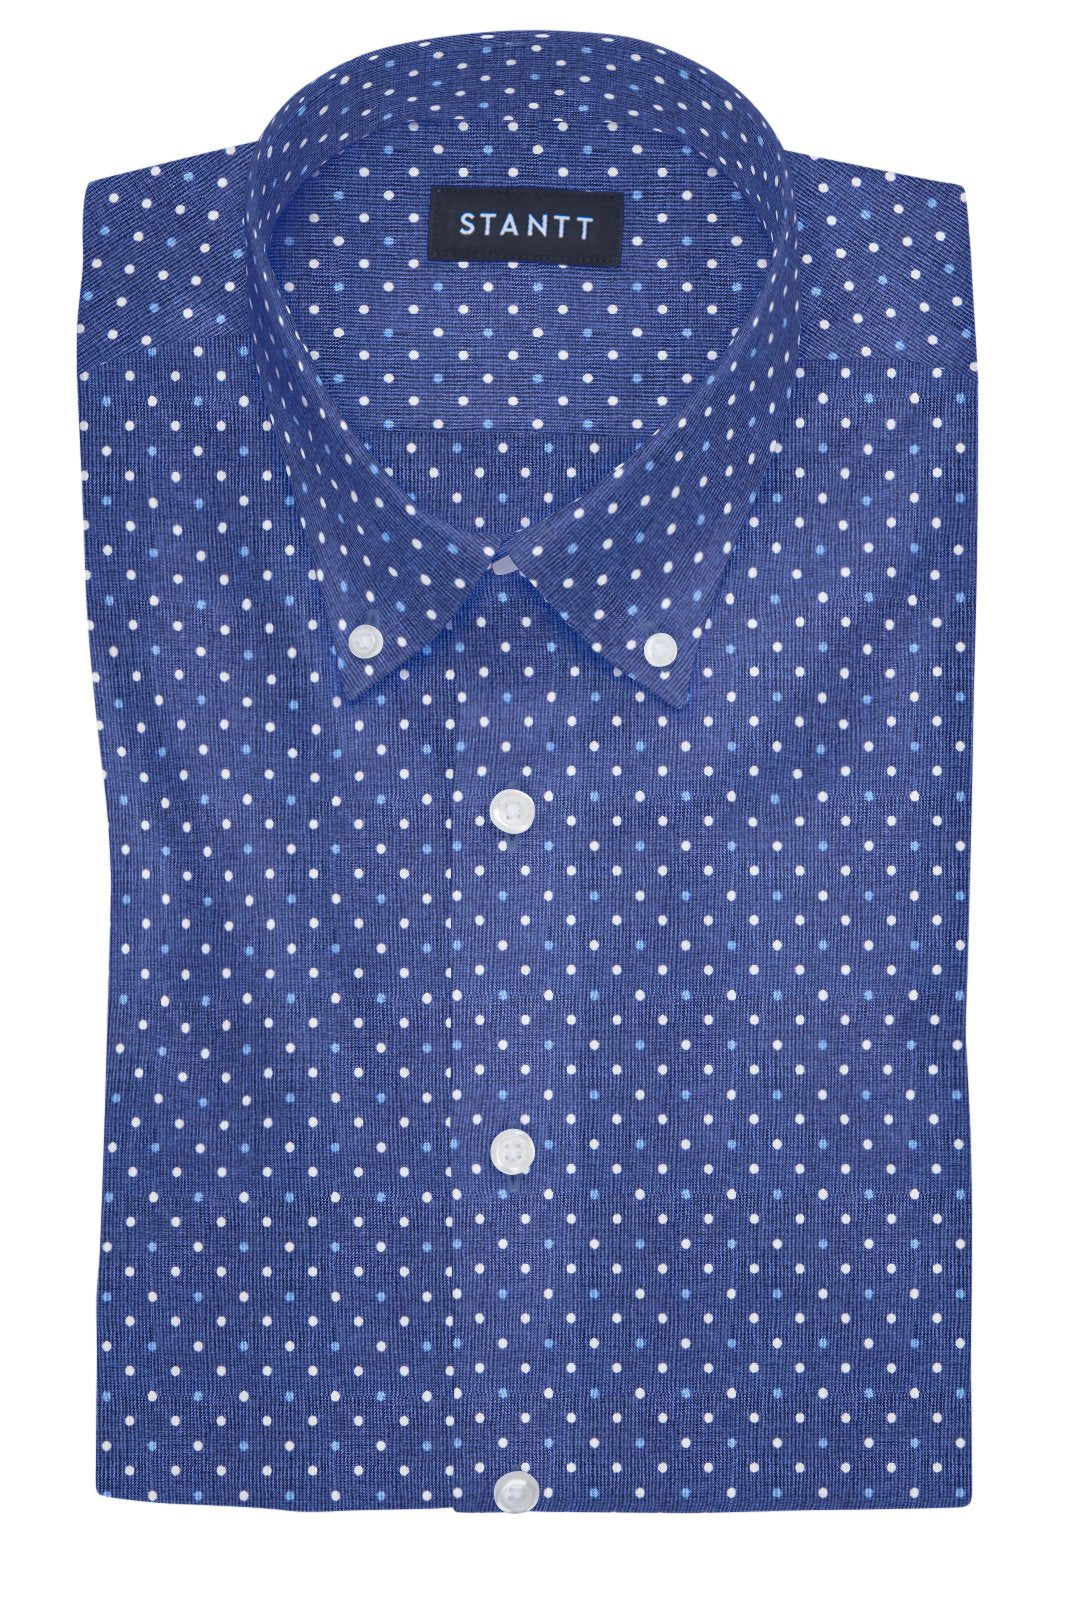 Navy and White Contemporary Dots: Button-Down Collar, Barrel Cuff